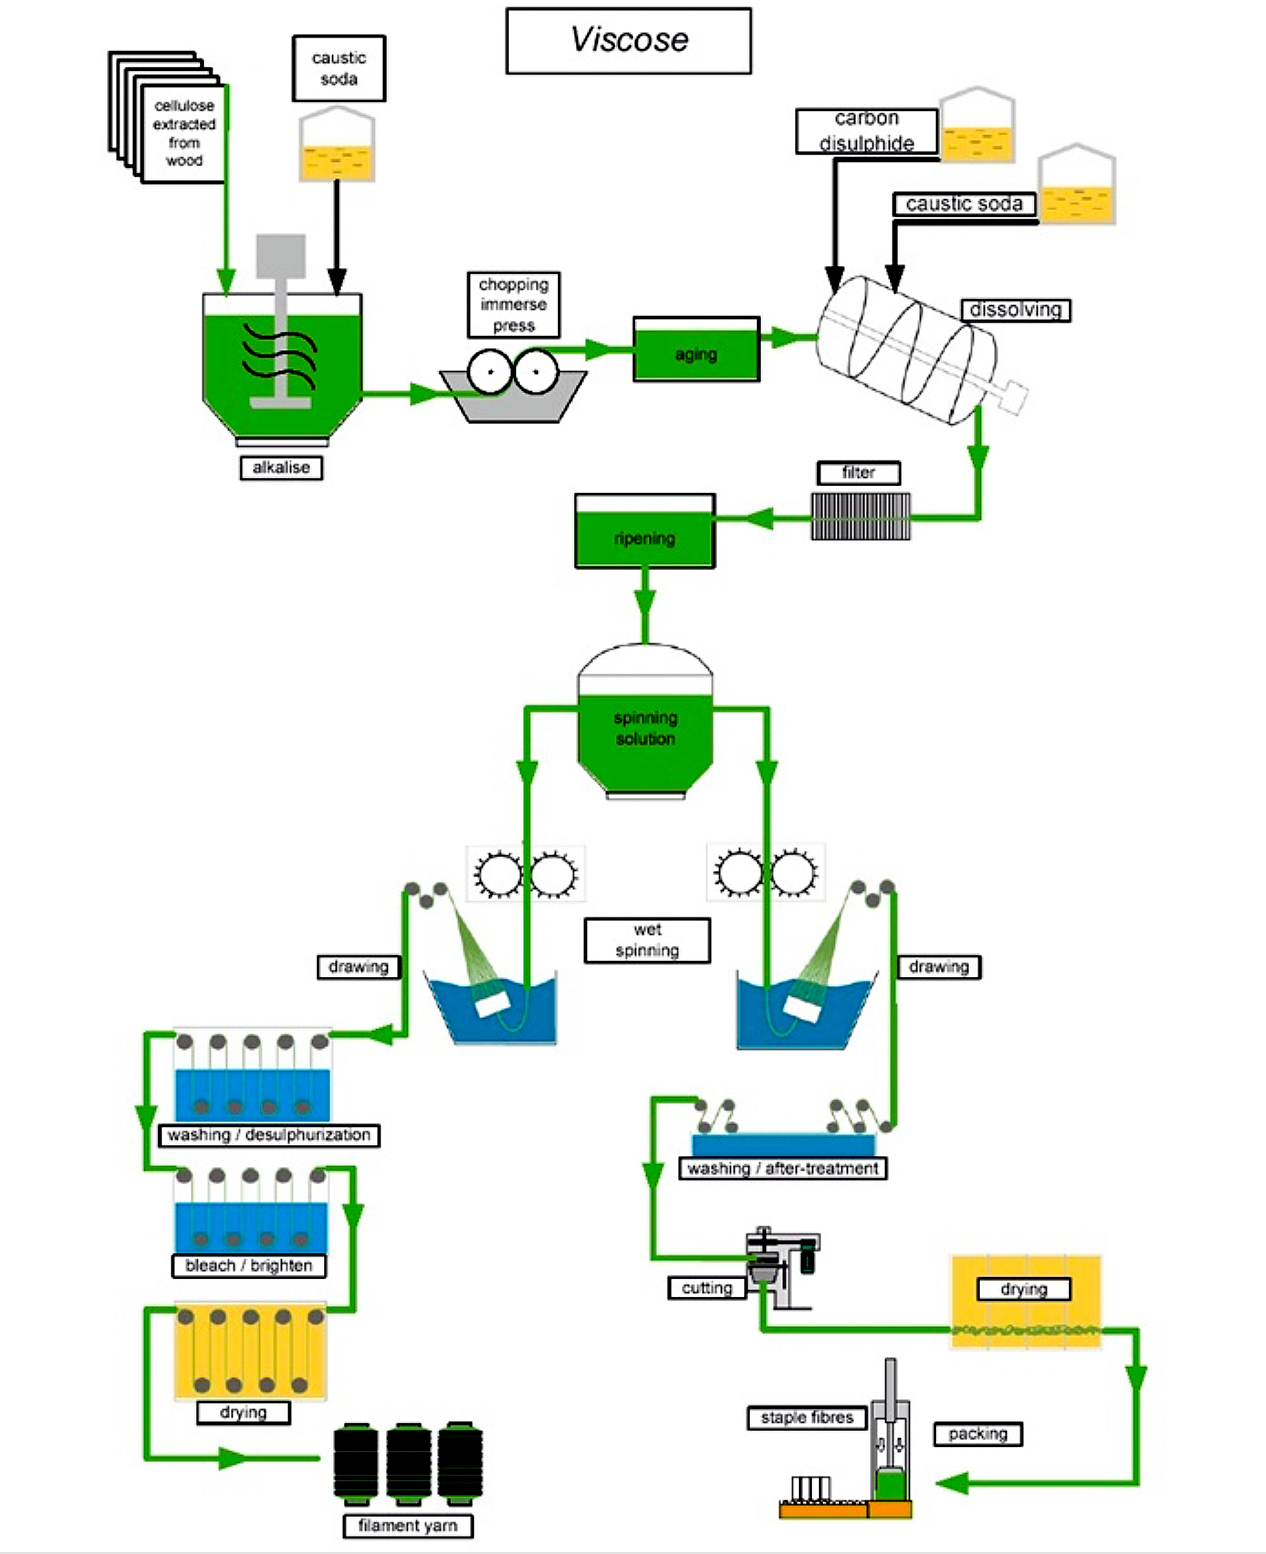 Viscose process diagram